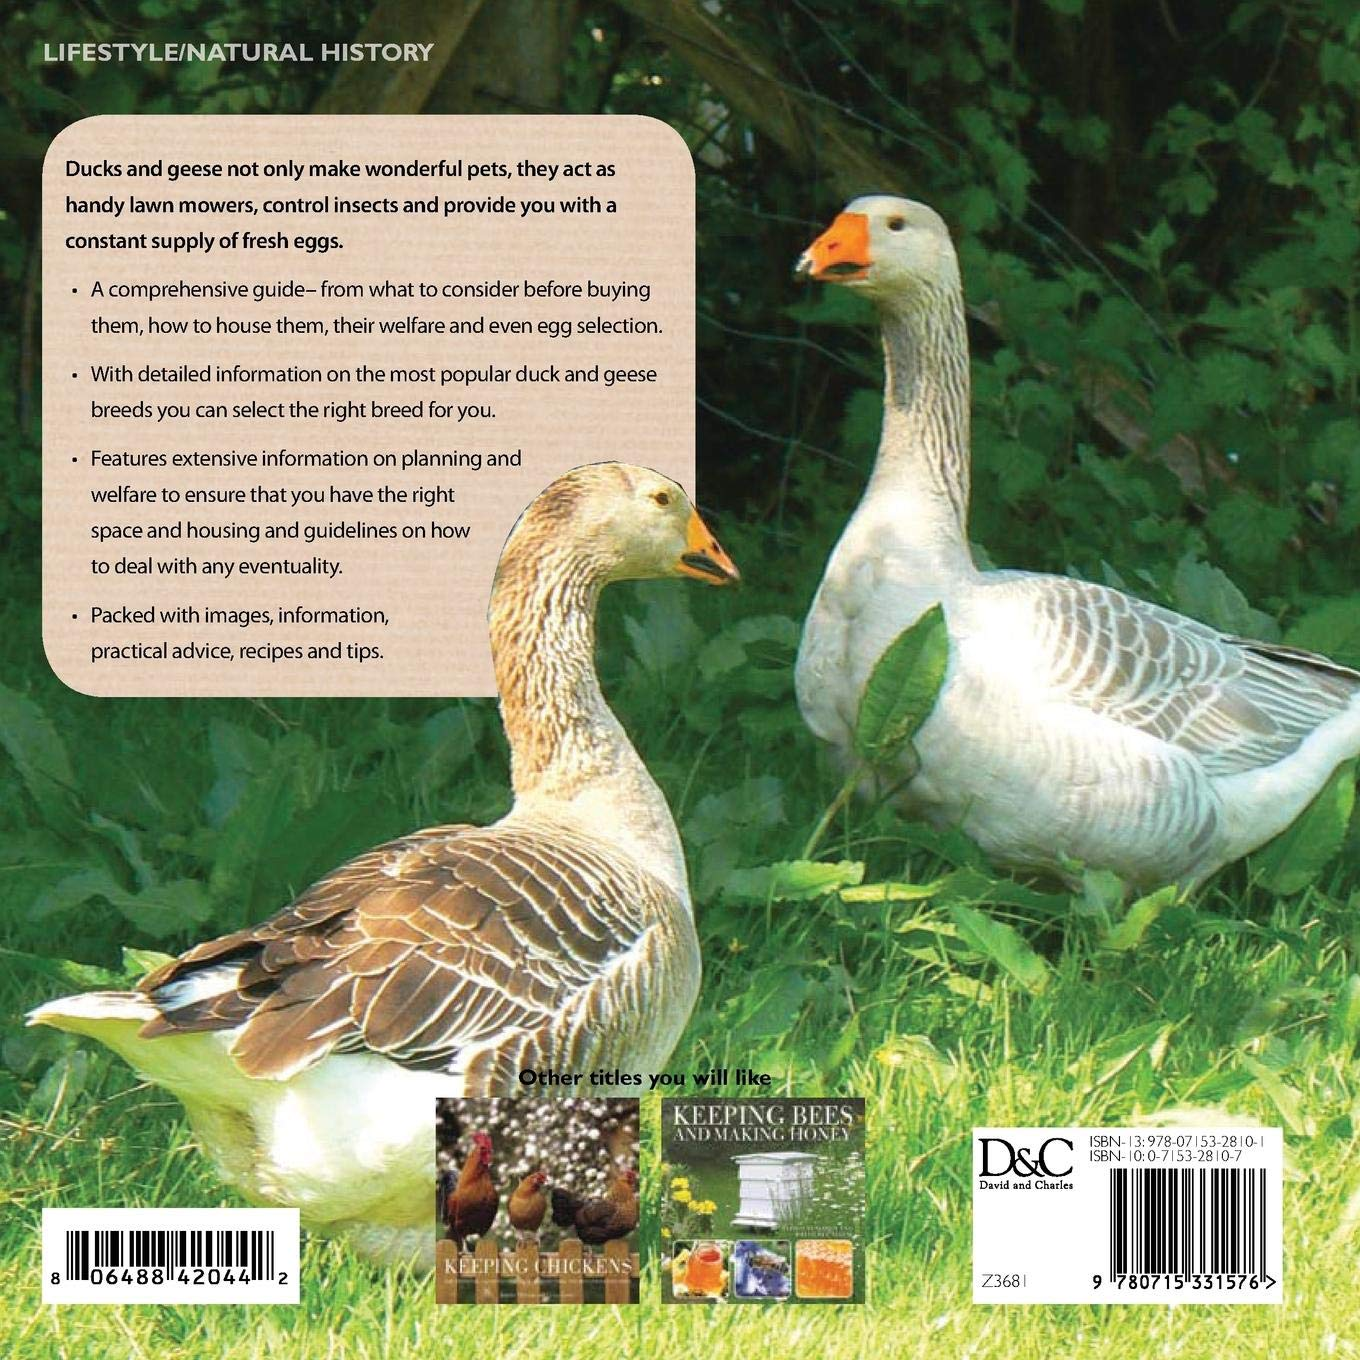 Keeping Ducks & Geese: Chris Ashton, Mike Ashton: 9780715331576:  Amazon.com: Books